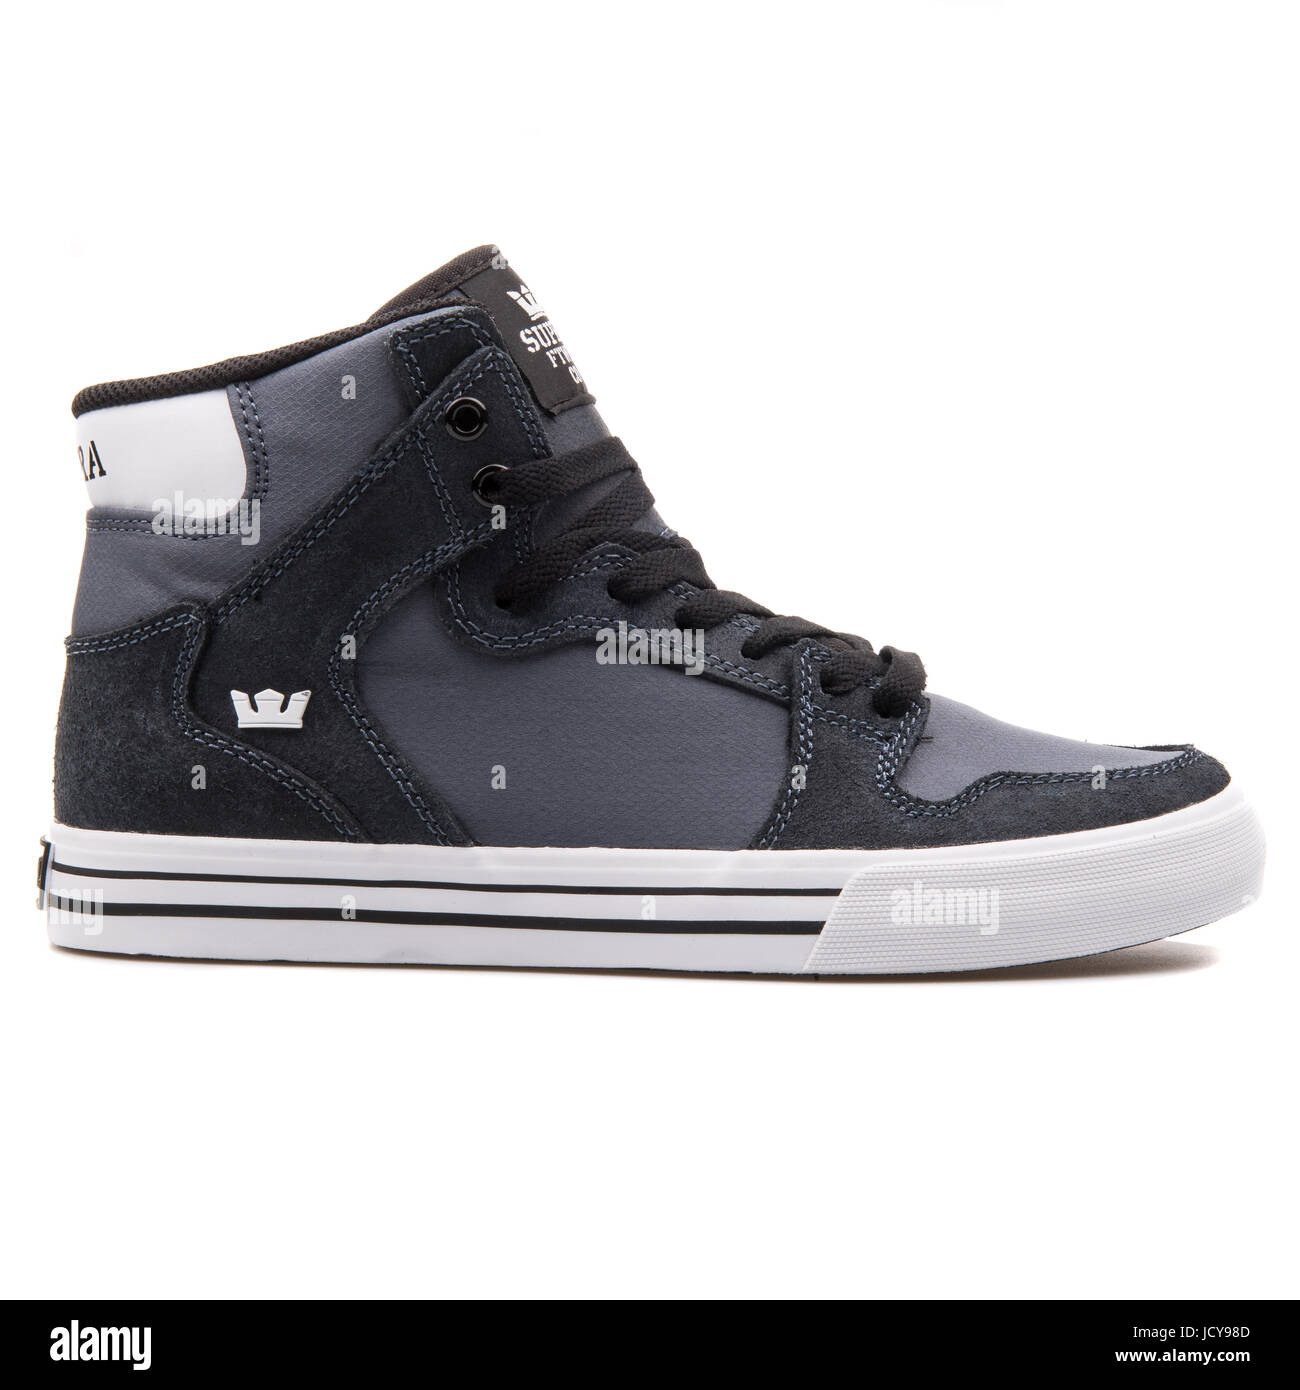 best website 120b1 53ceb Supra Vaider Charcoal White Men s Sportive Shoes - S28271